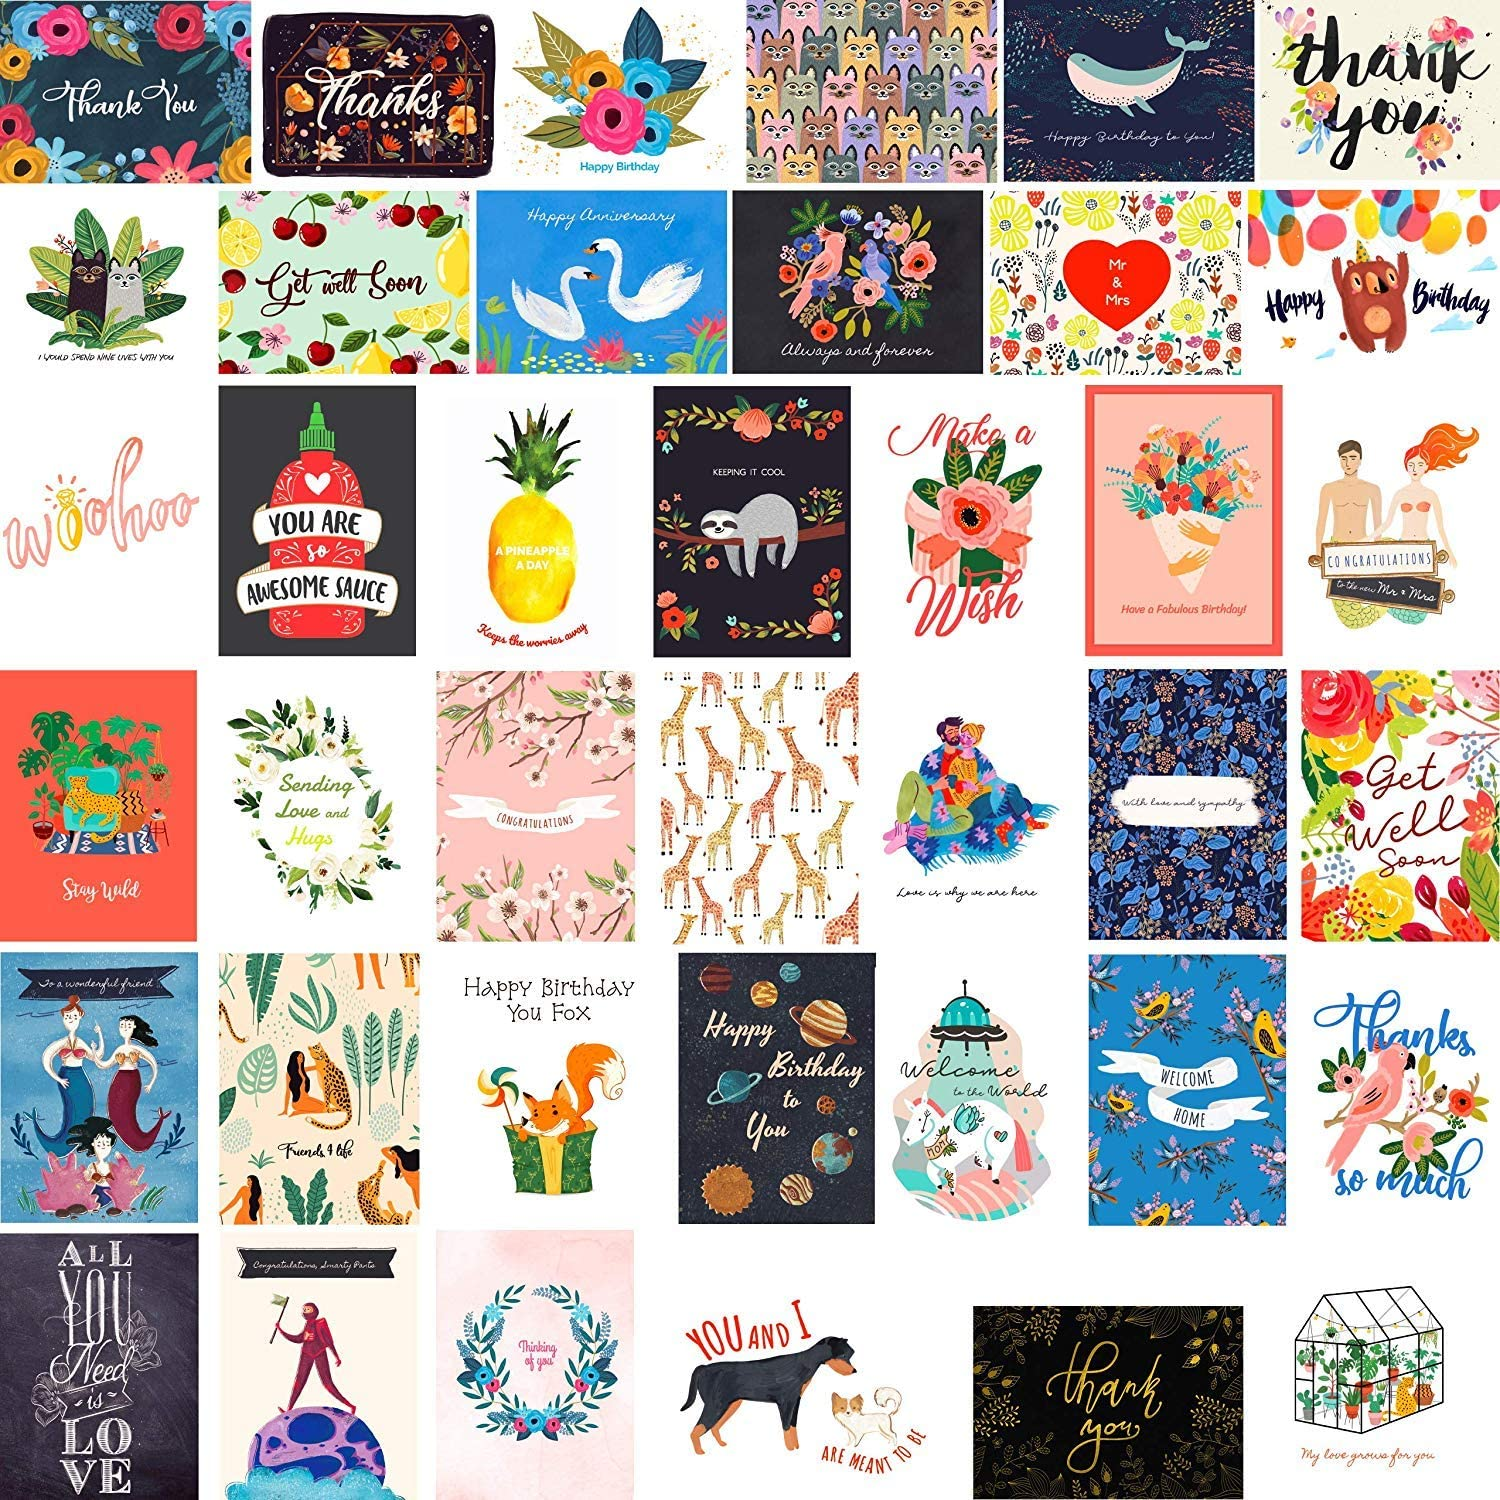 40 Greeting Cards with 1 year warranty Assortment Envelopes Ranking TOP19